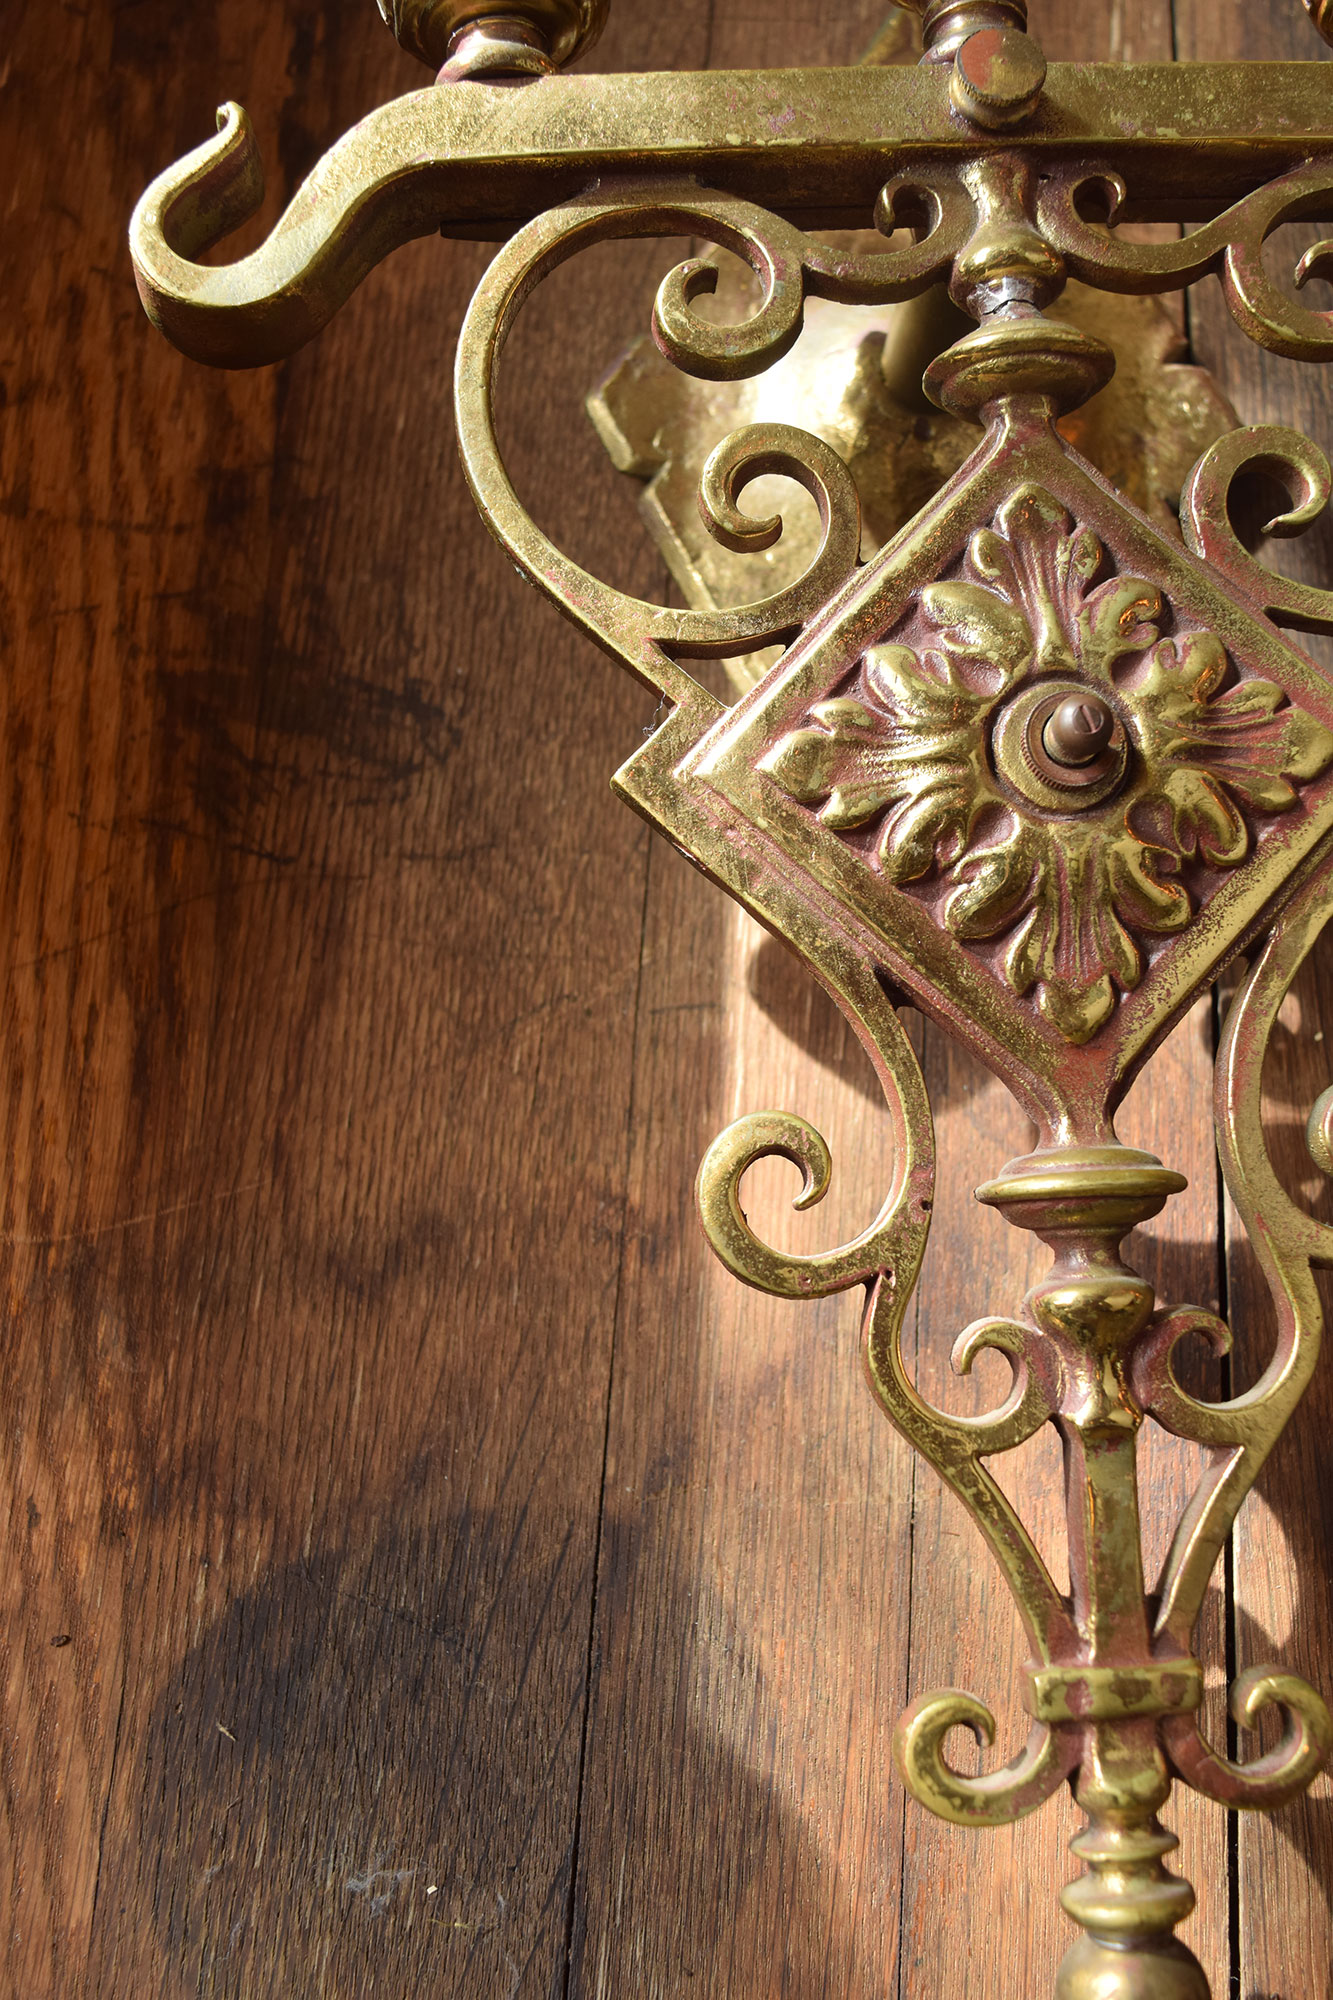 46925-3-candle-brass-sconce-side-view.jpg